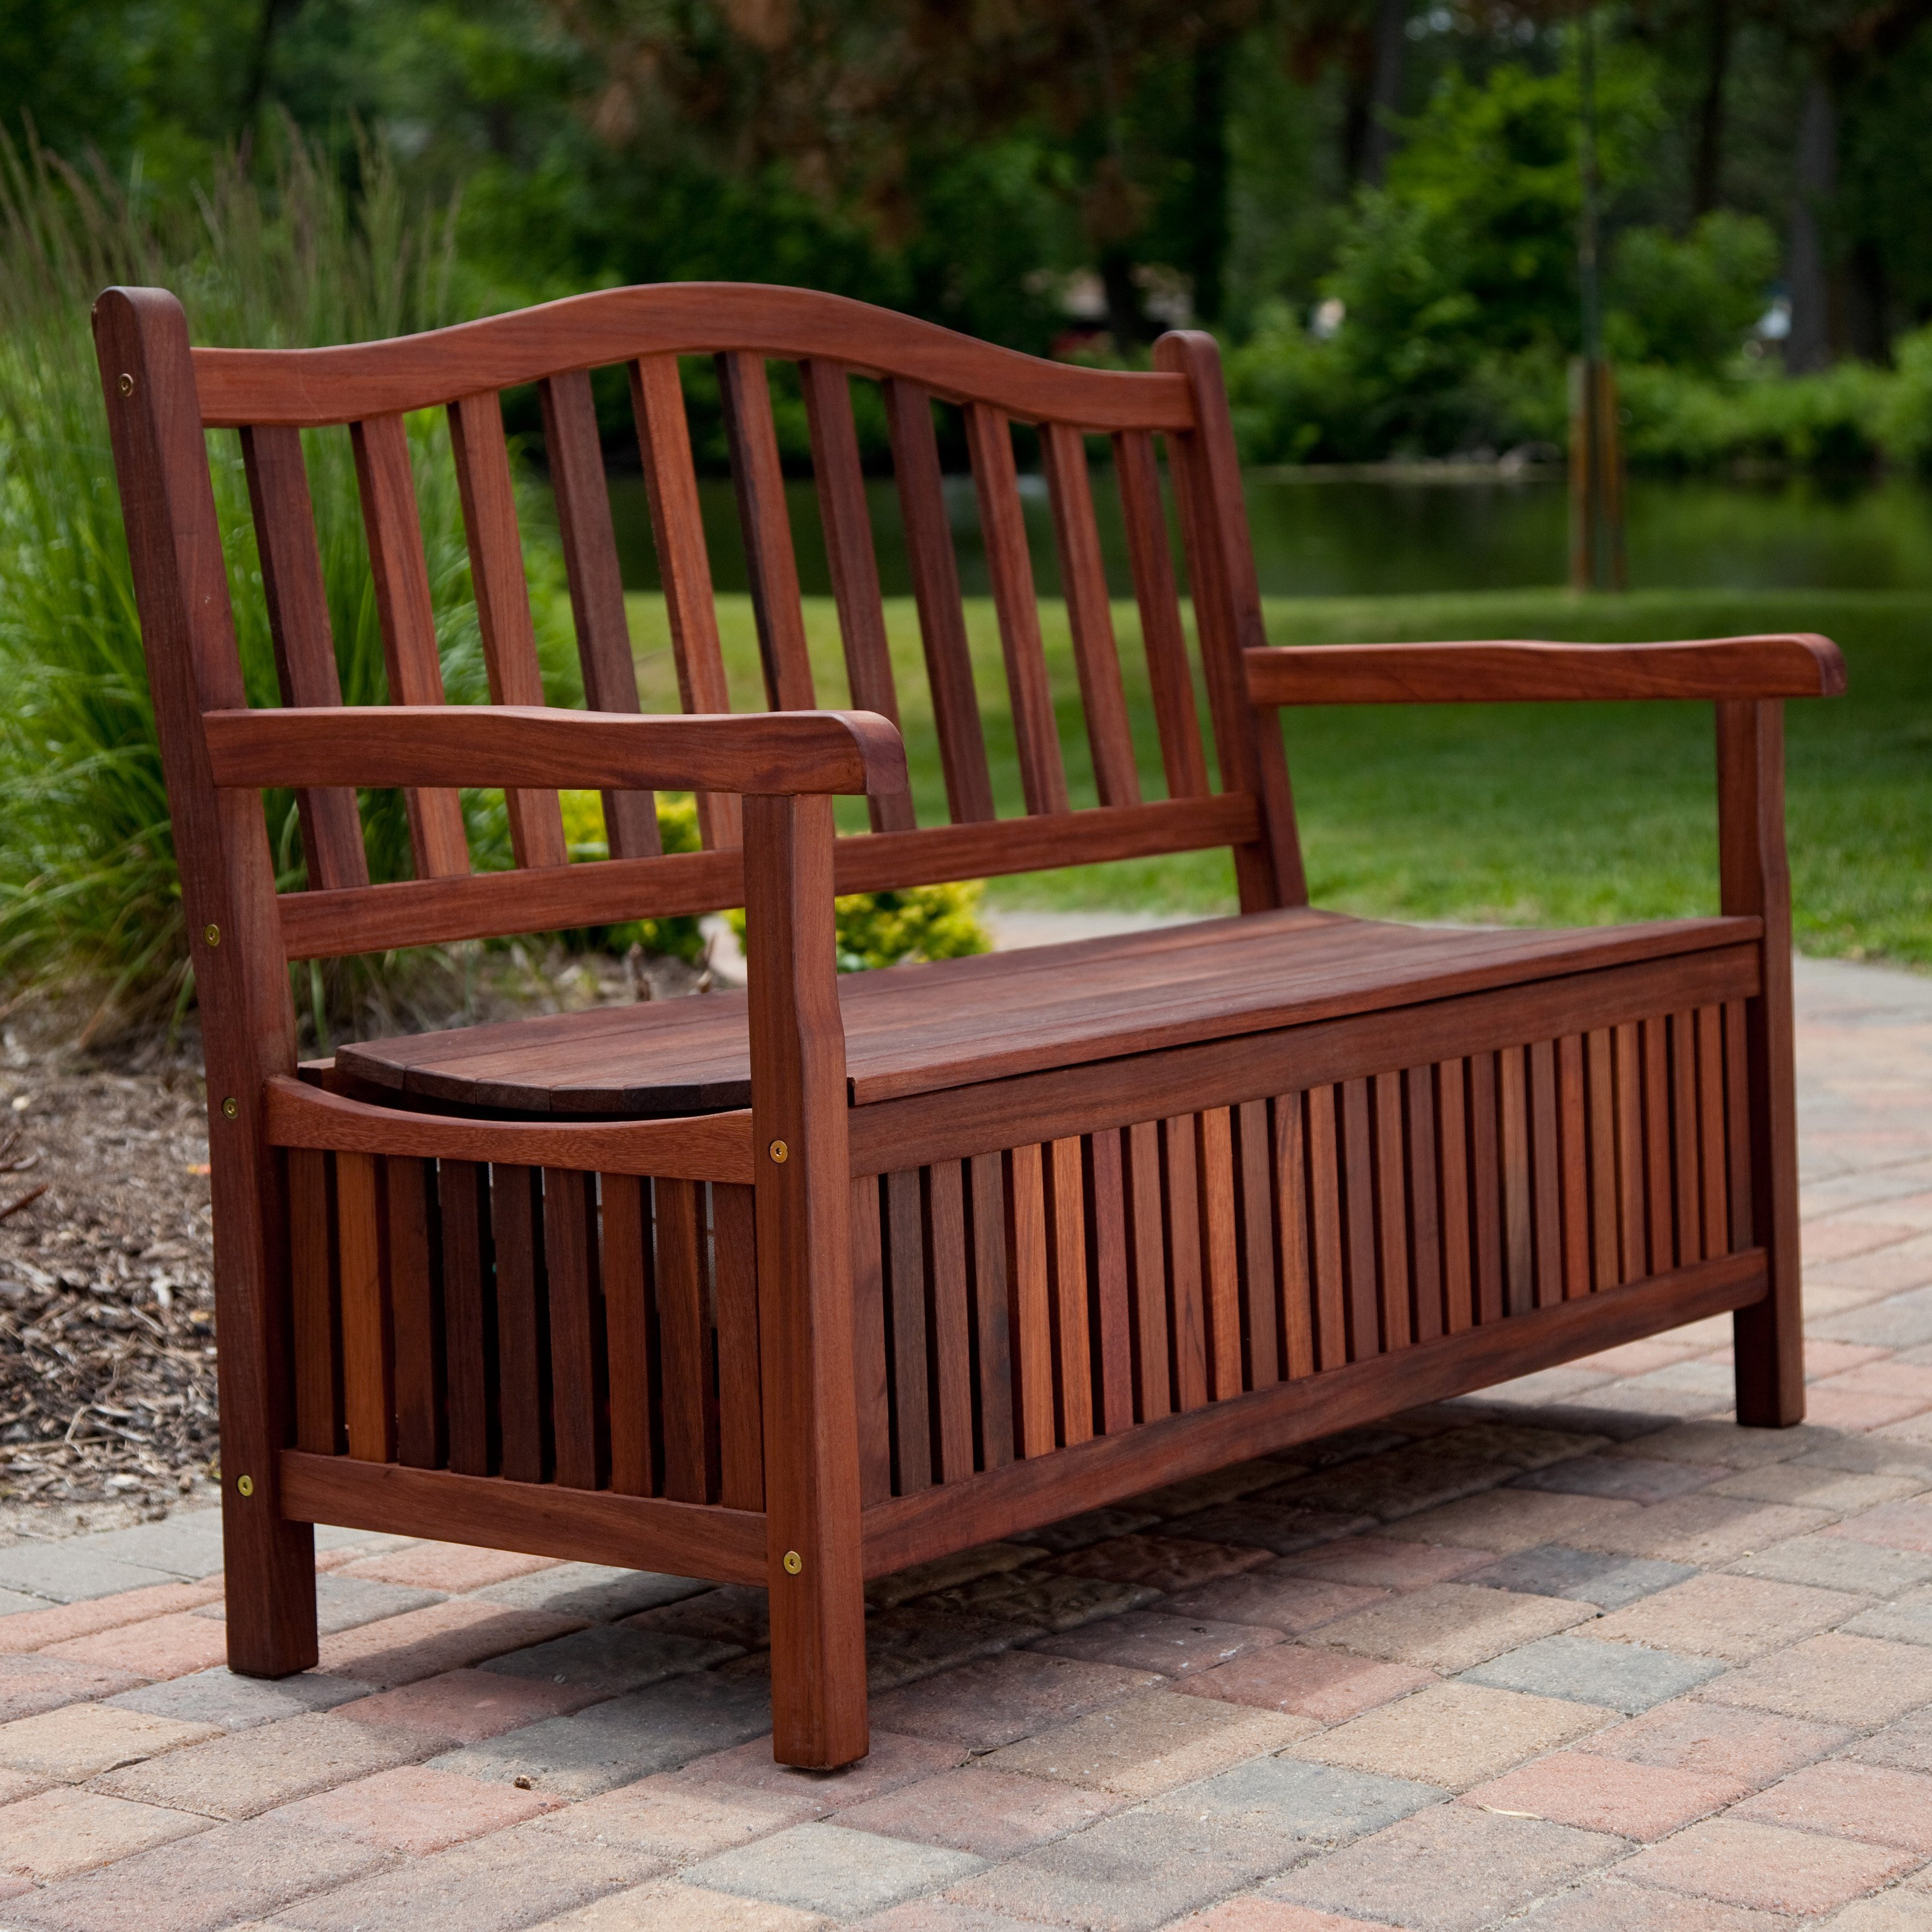 Ordinaire Curved Back Outdoor Wood 30 Gallon Storage Bench   Walmart.com